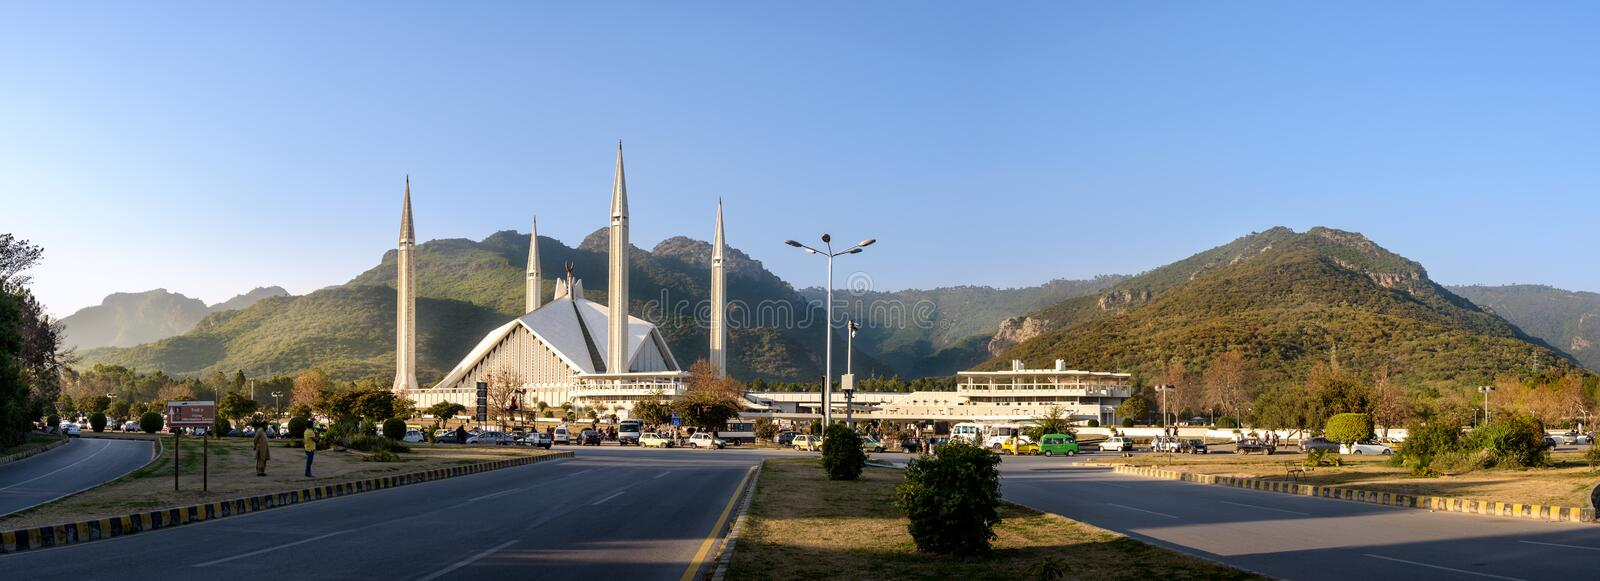 Vue panoramique de Faisal Mosque aimable, Islamabad photo stock